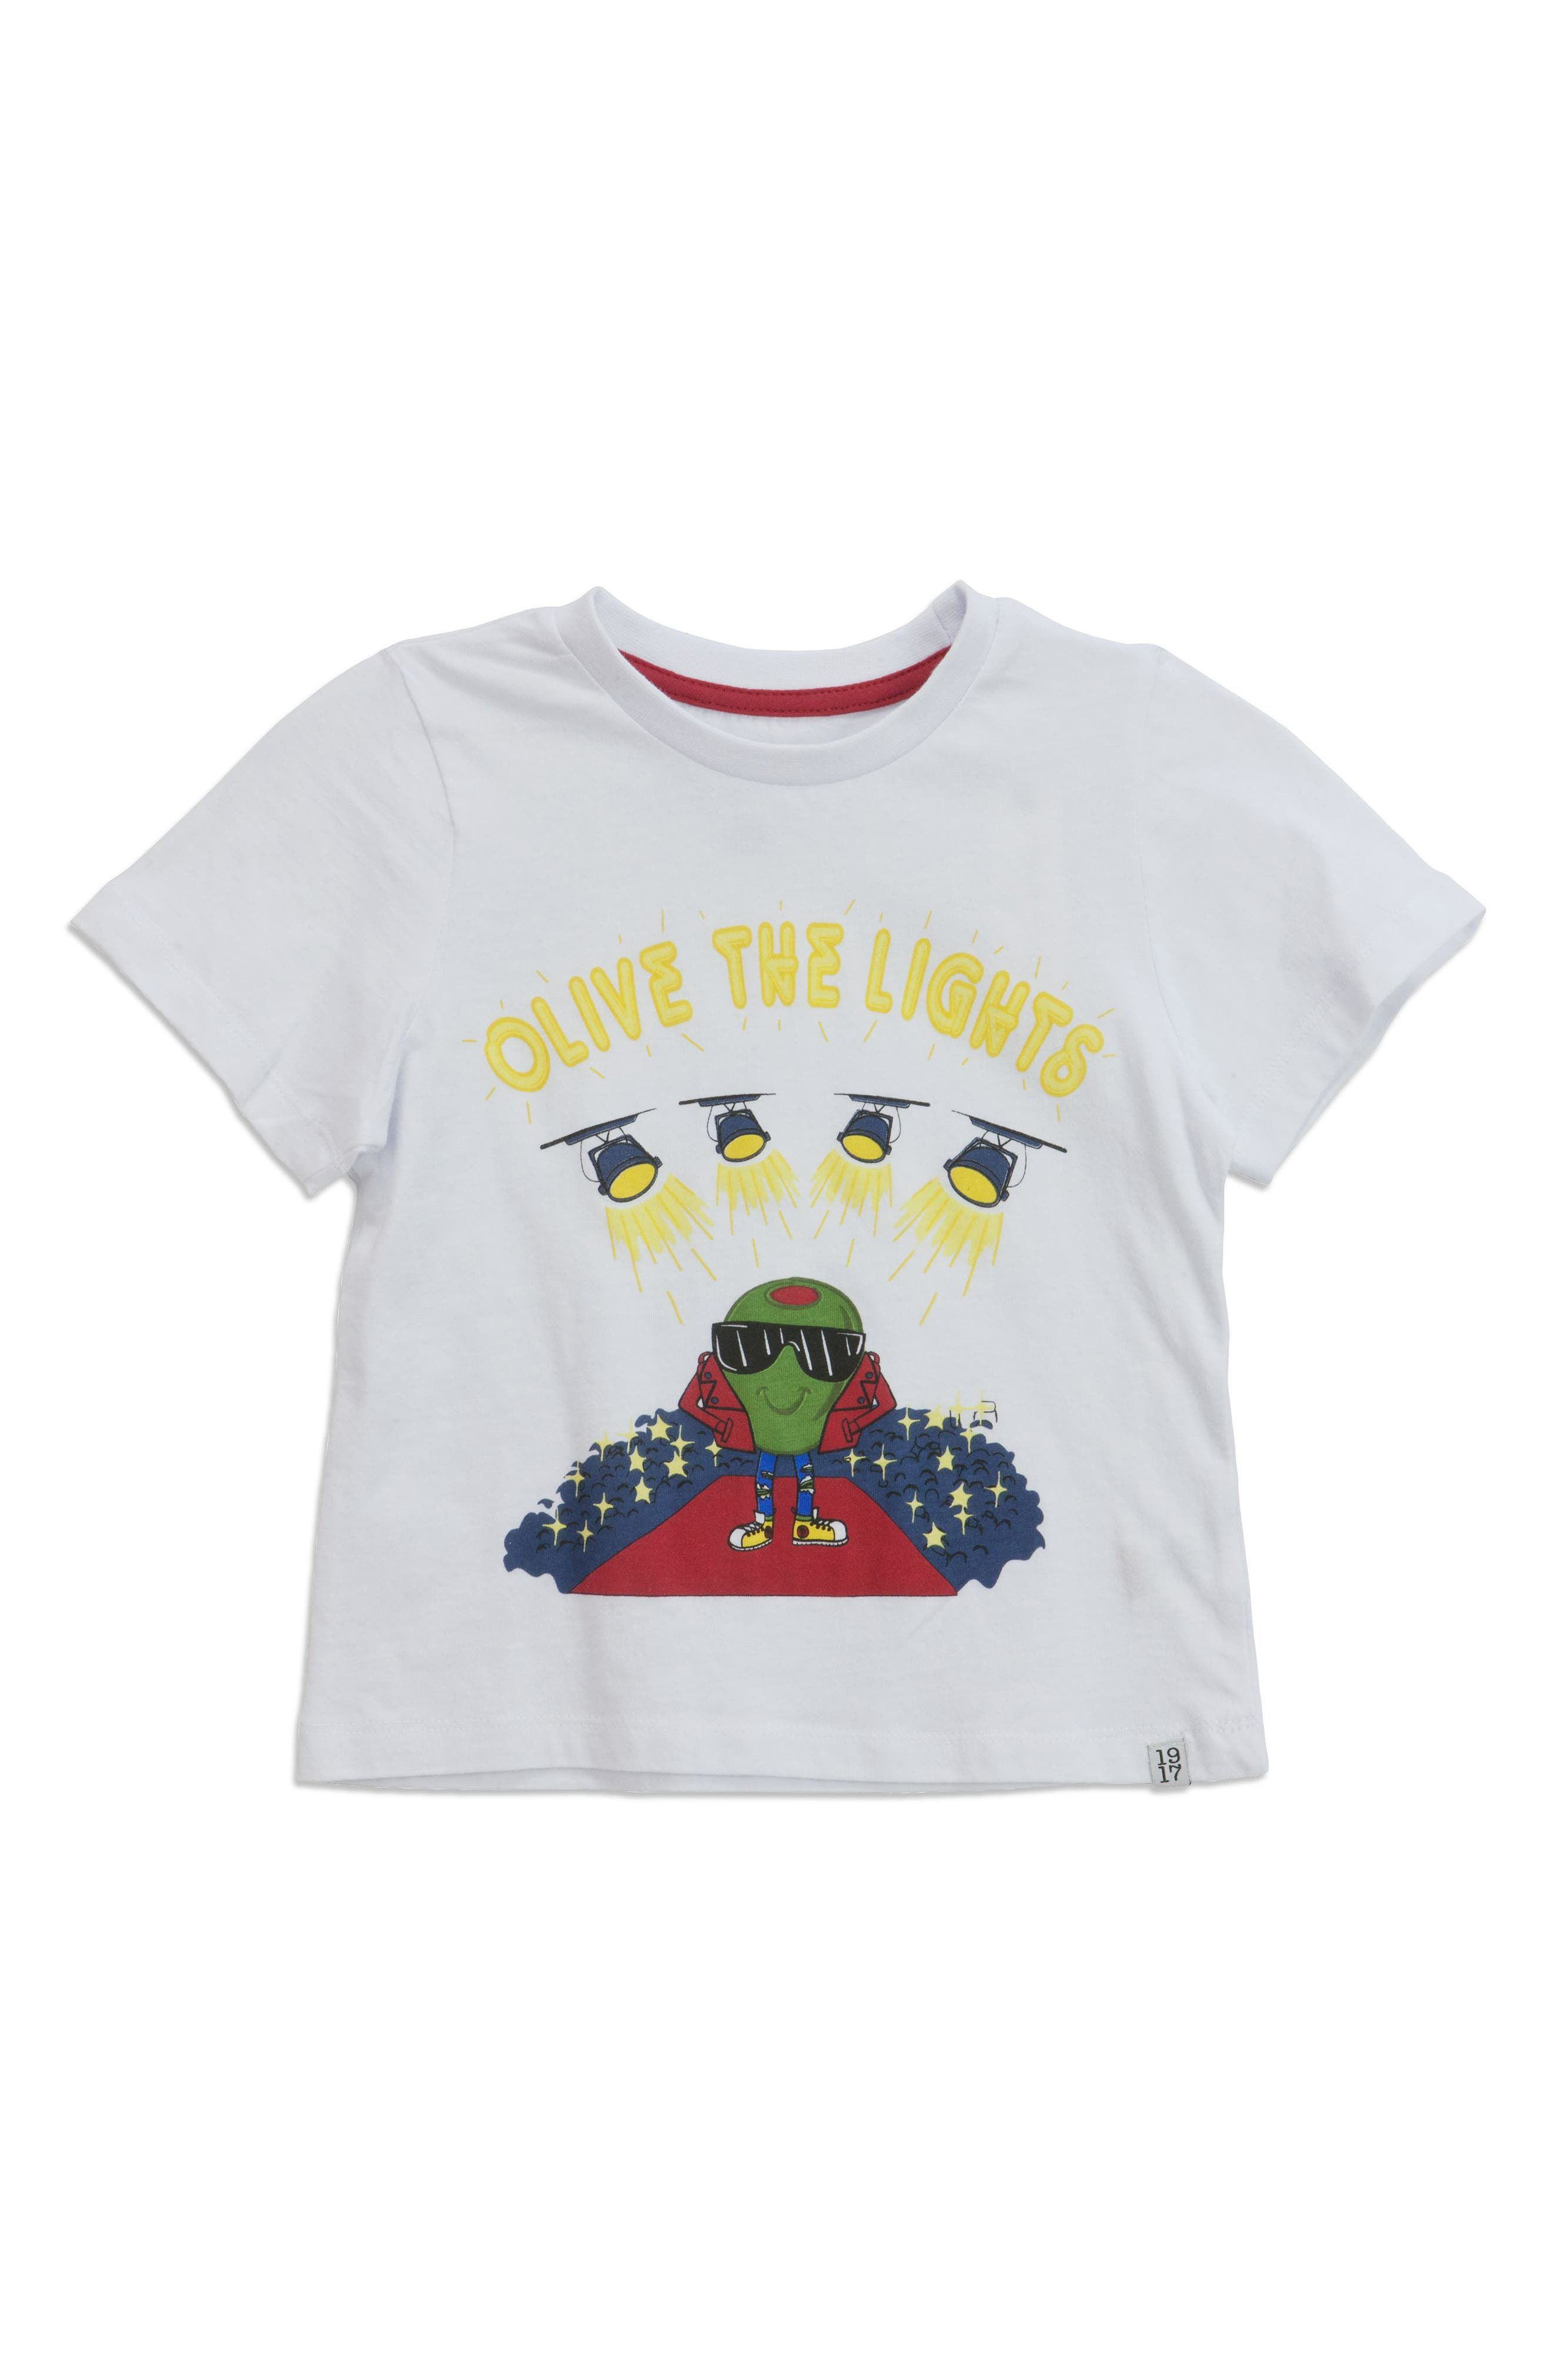 Olive the Lights Graphic T-Shirt,                             Main thumbnail 1, color,                             White